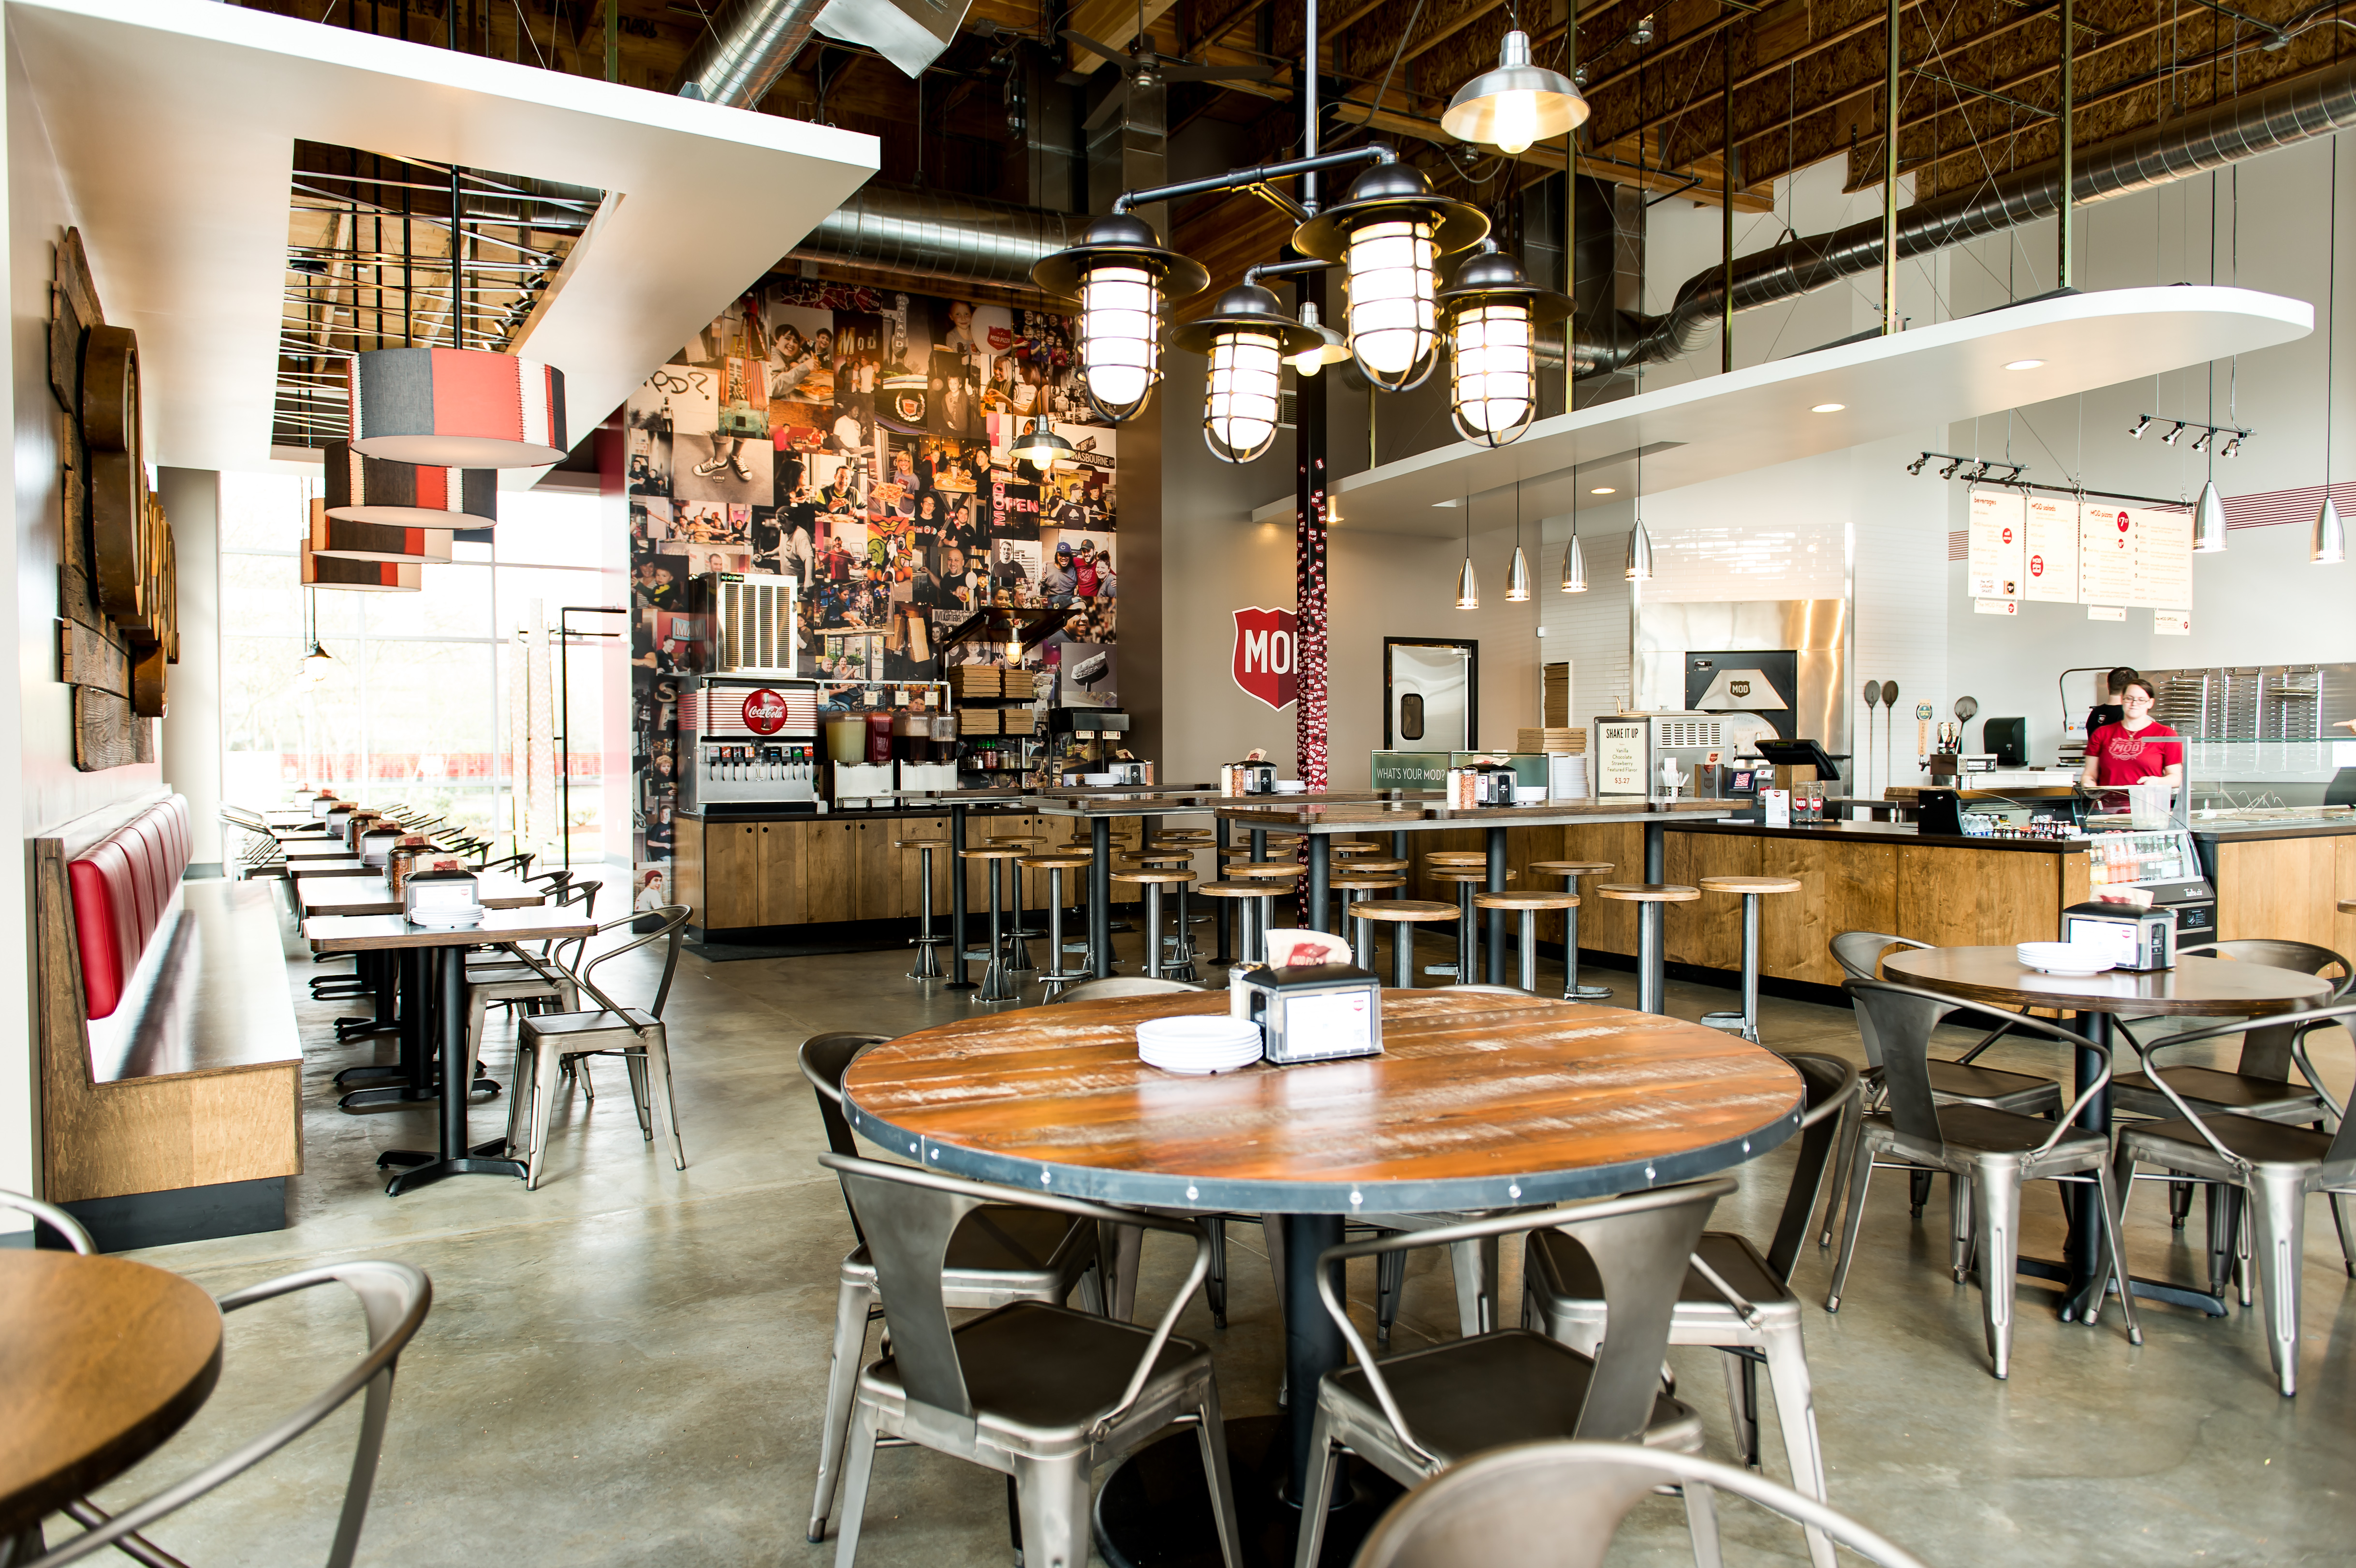 Mod pizza interior limelight partners